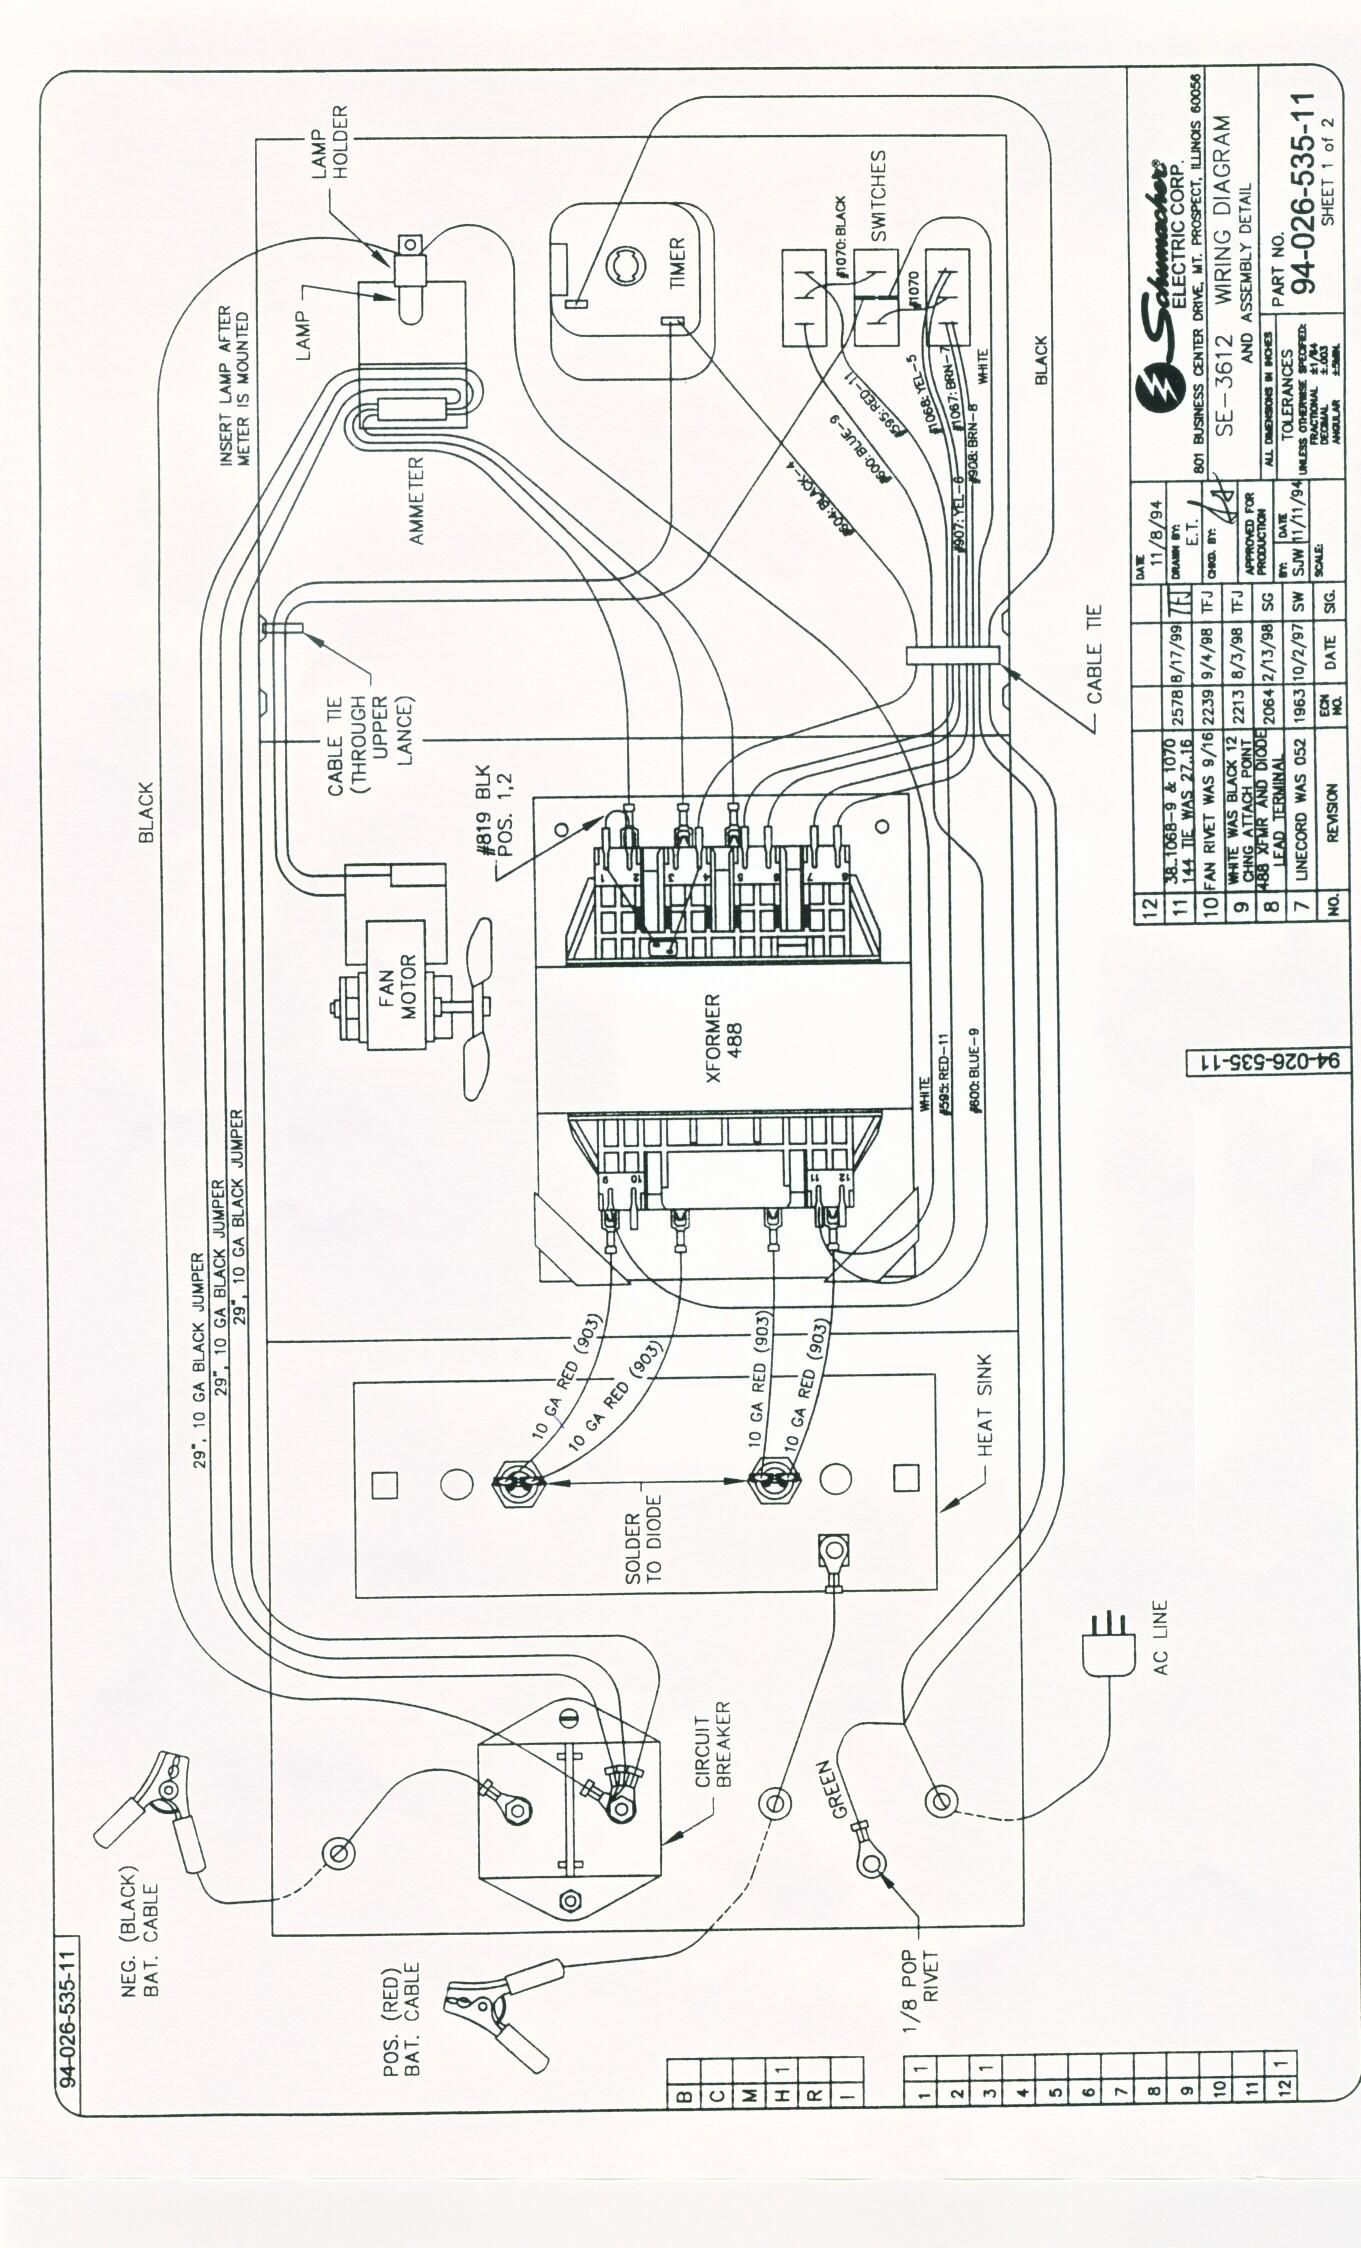 Electric Car Controller Schematic